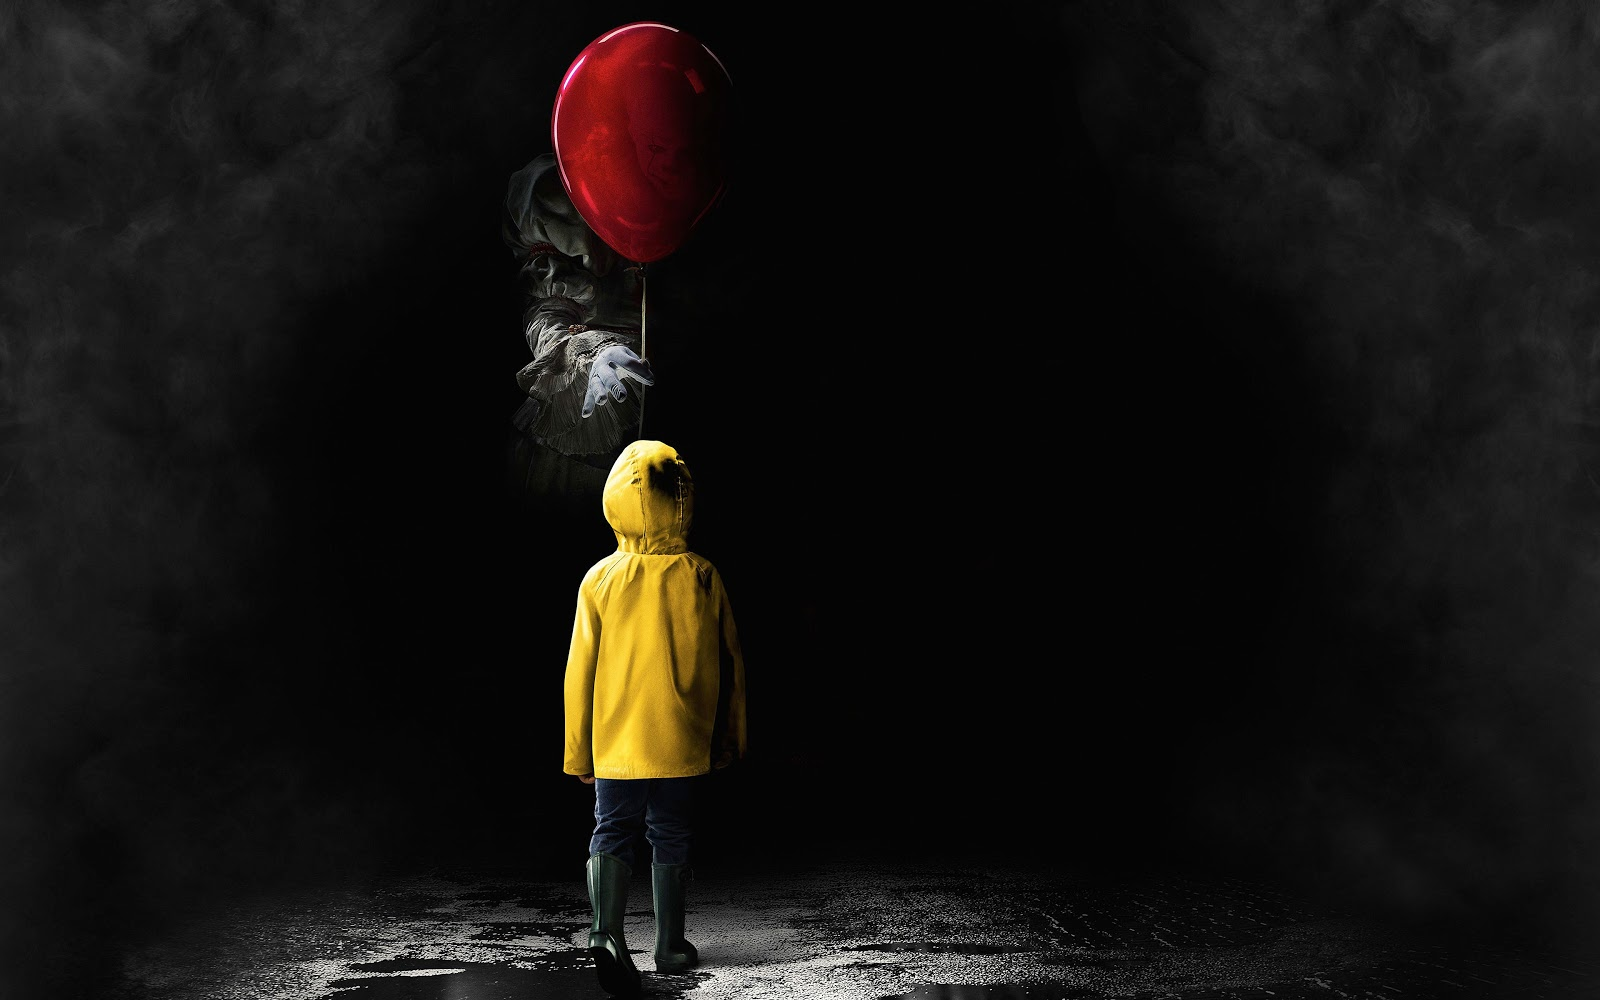 Wallpapers PC, Horror movie, IT